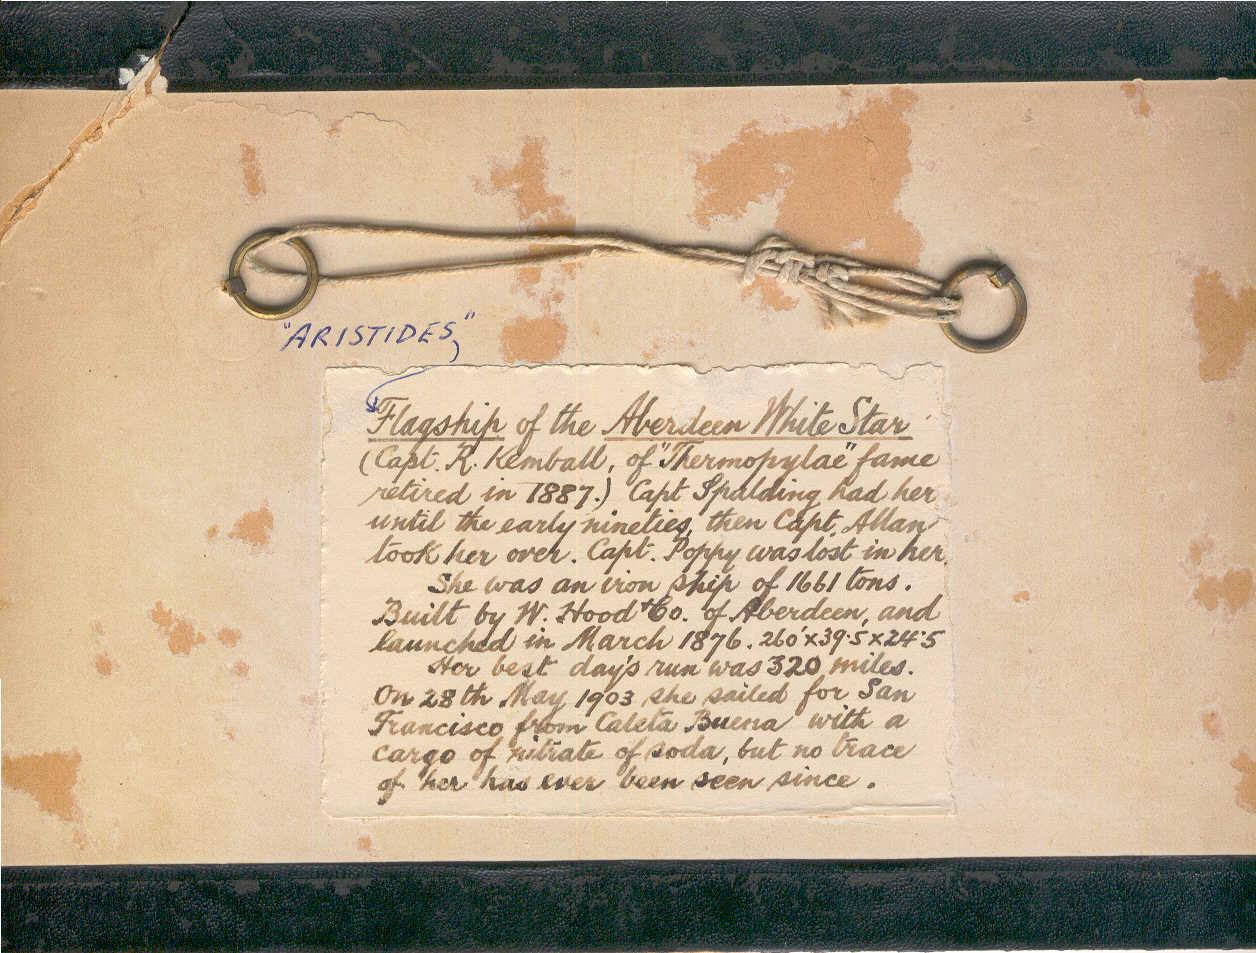 """Card which was evidently the backing for a frame photograph of the full rigger """"Aristides"""""""